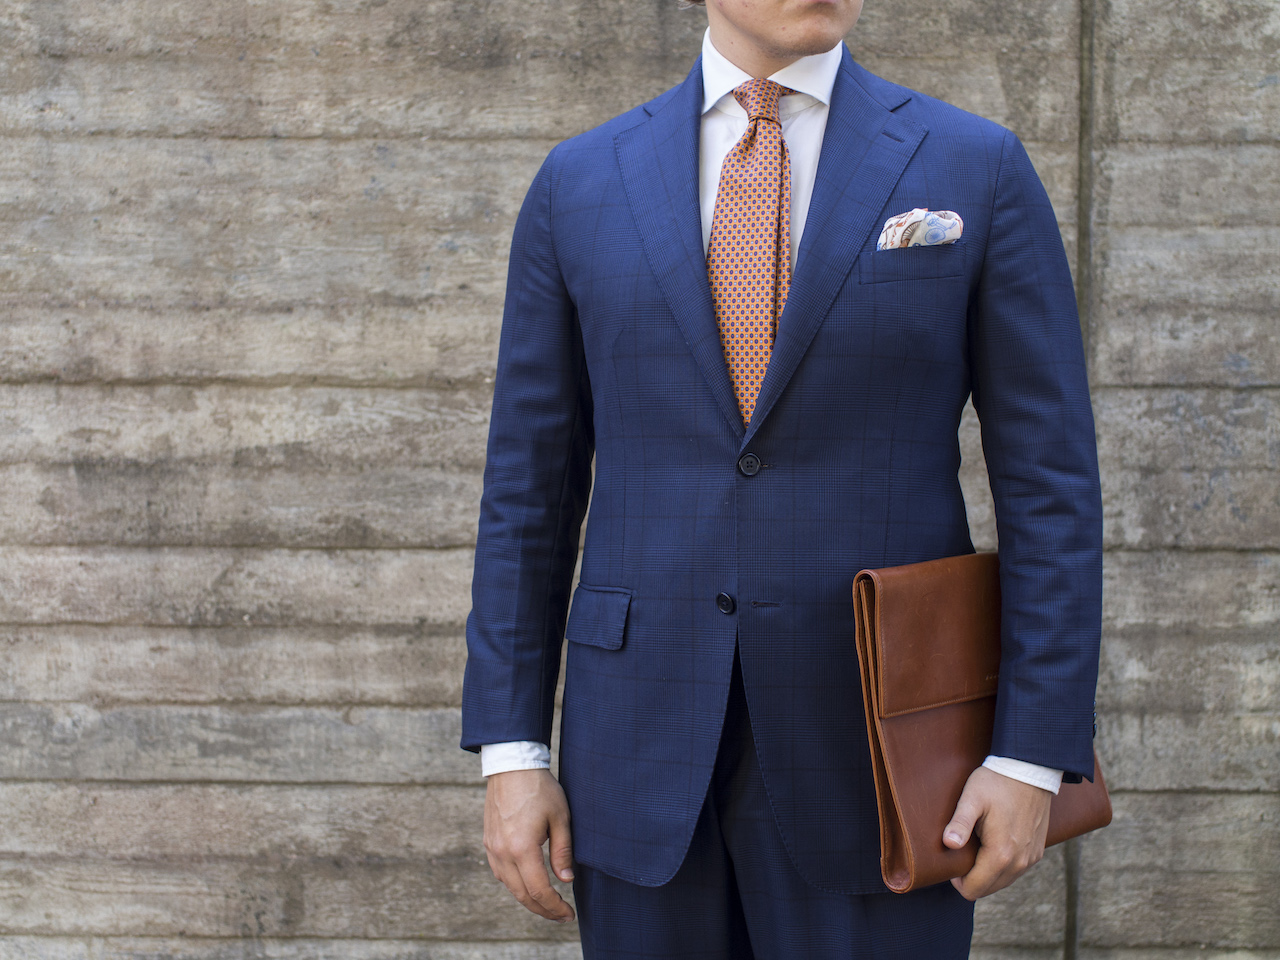 How to pair your tie and pocket square with your outfit